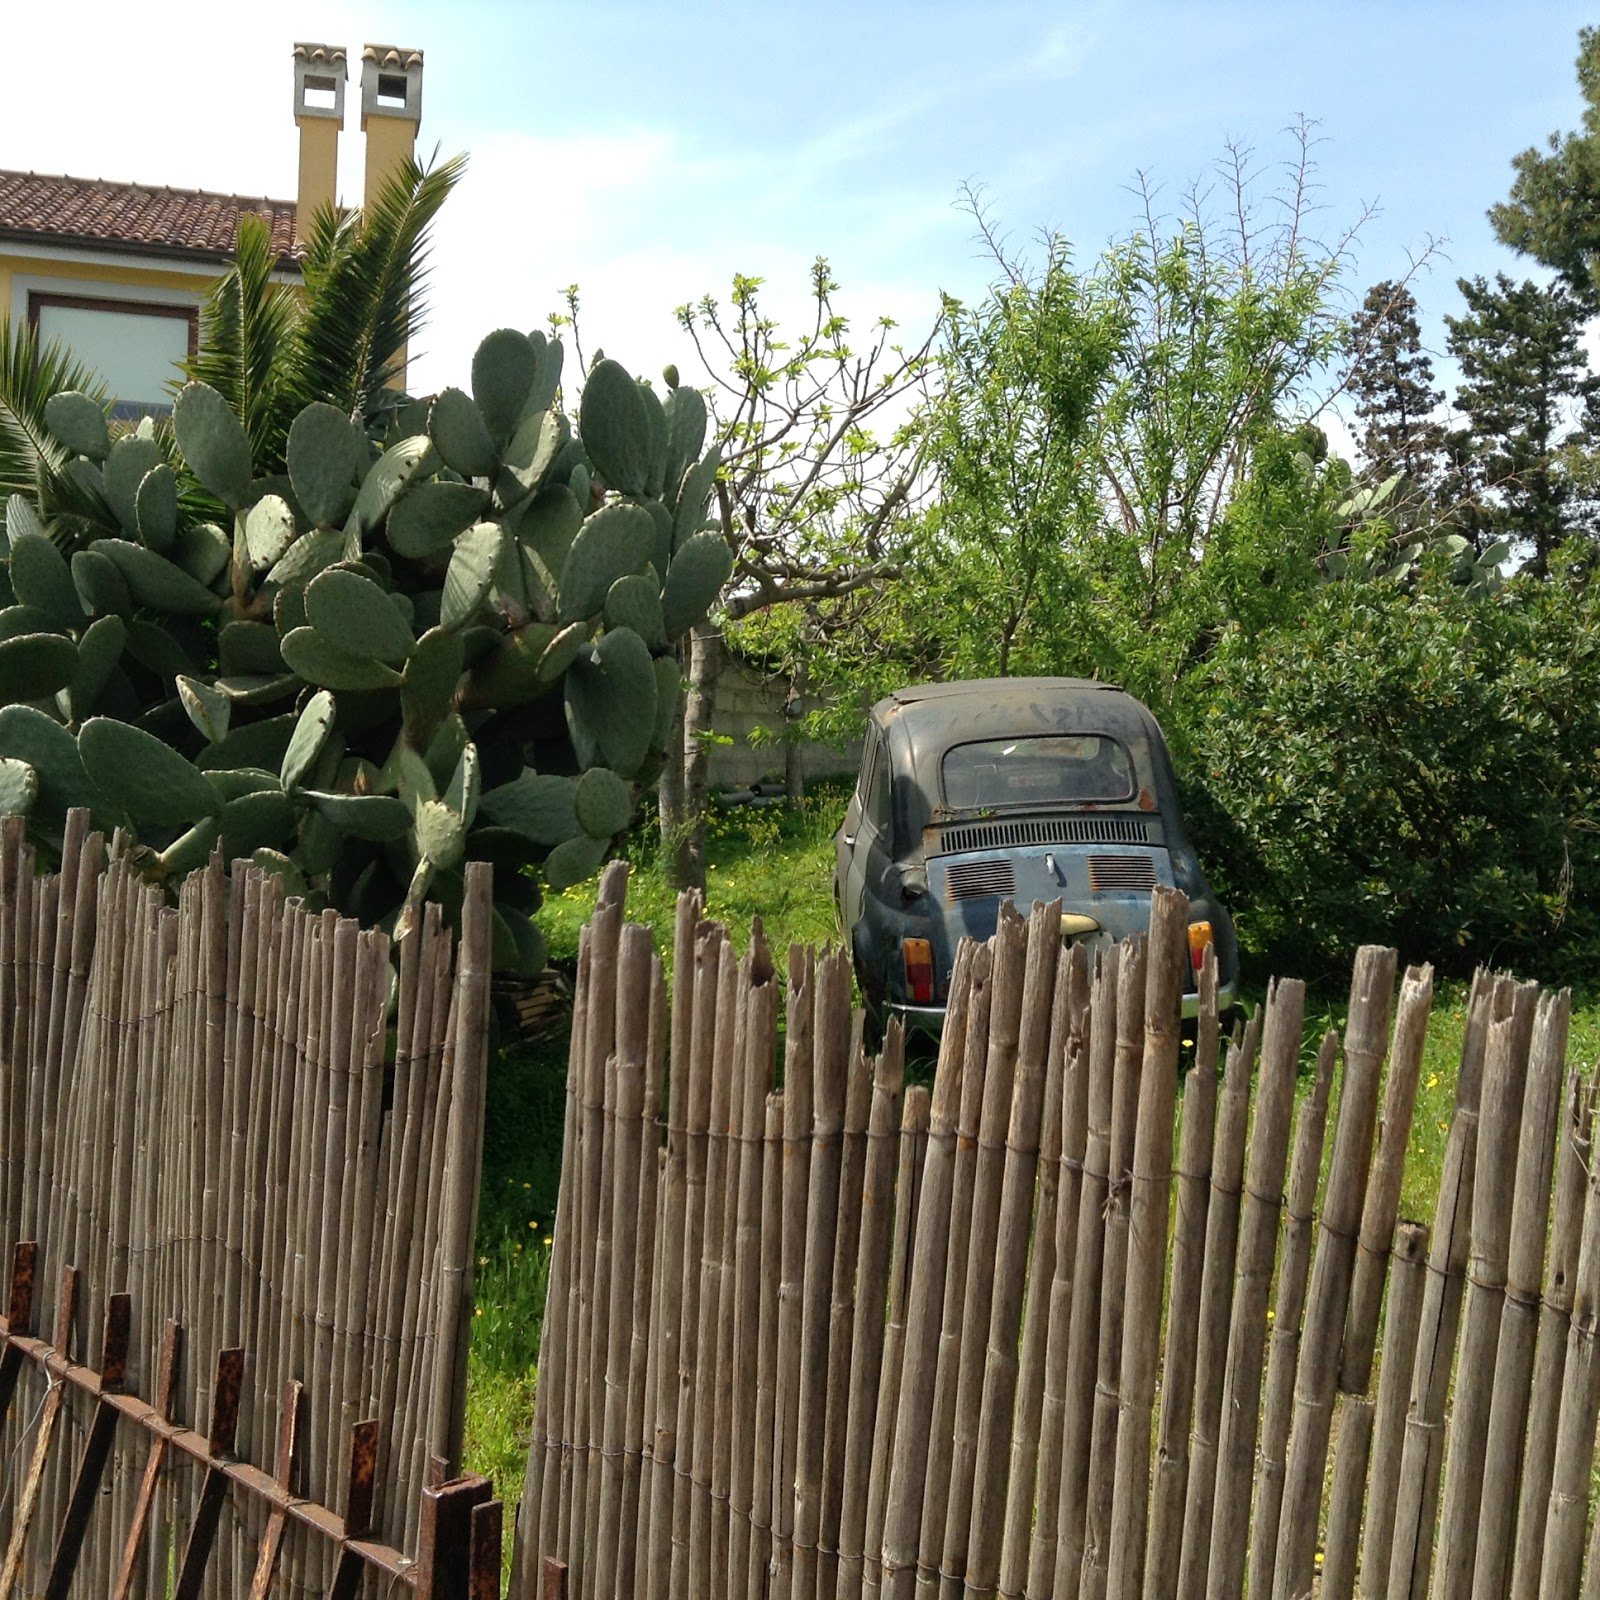 Old Fiat 500, Opuntia, & Reed fence in Barraccamanna, Sardinia